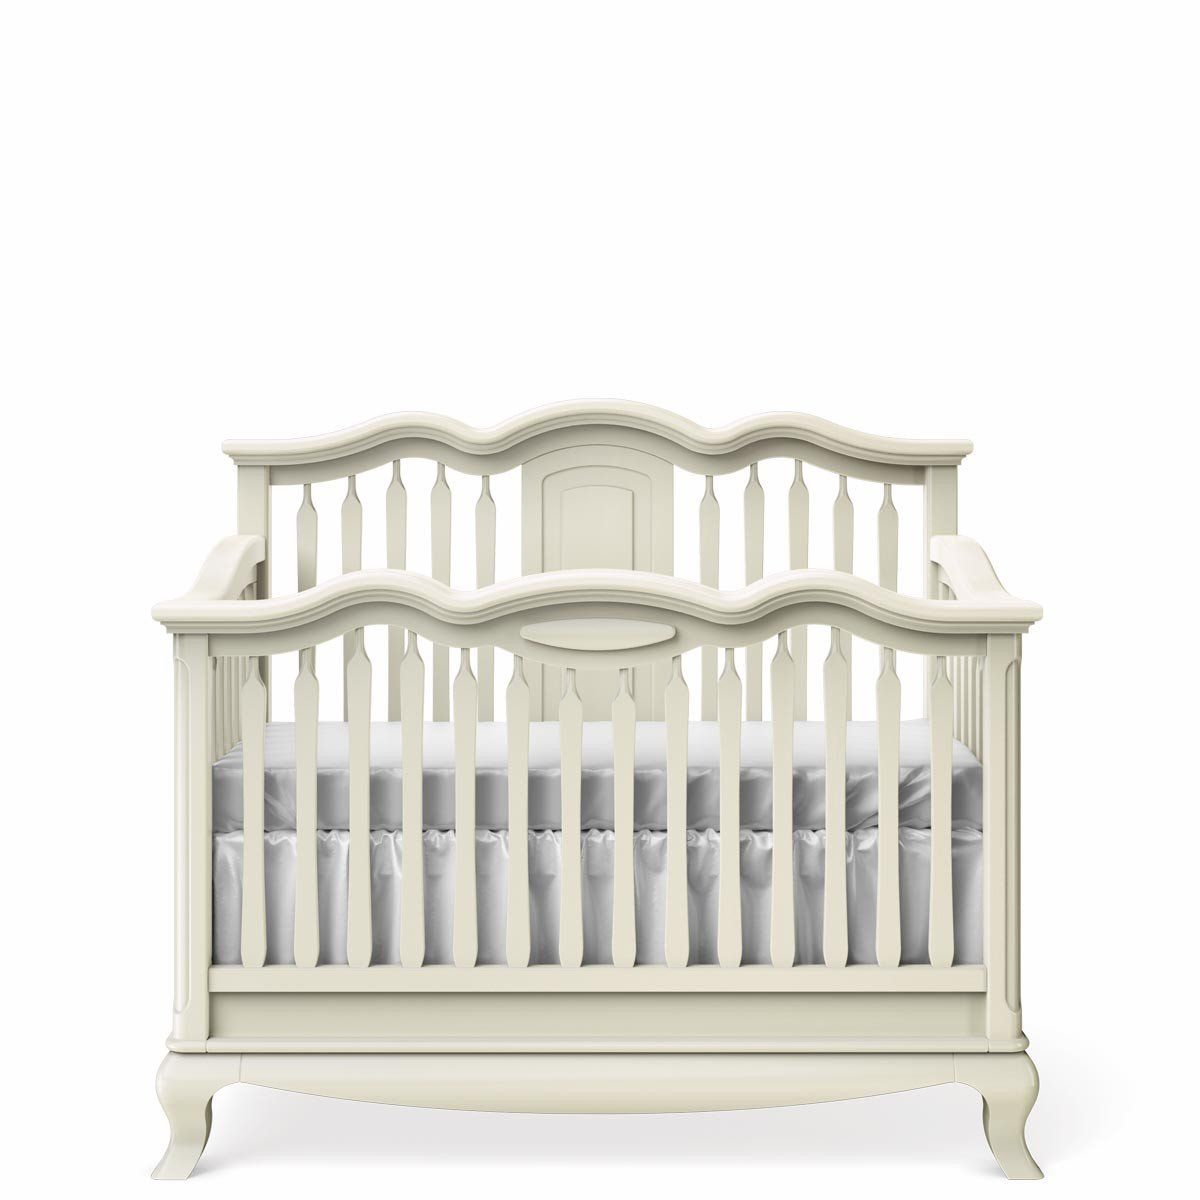 30 Baby Furniture S Houston Interior Design Bedroom Color Schemes Check More At Http